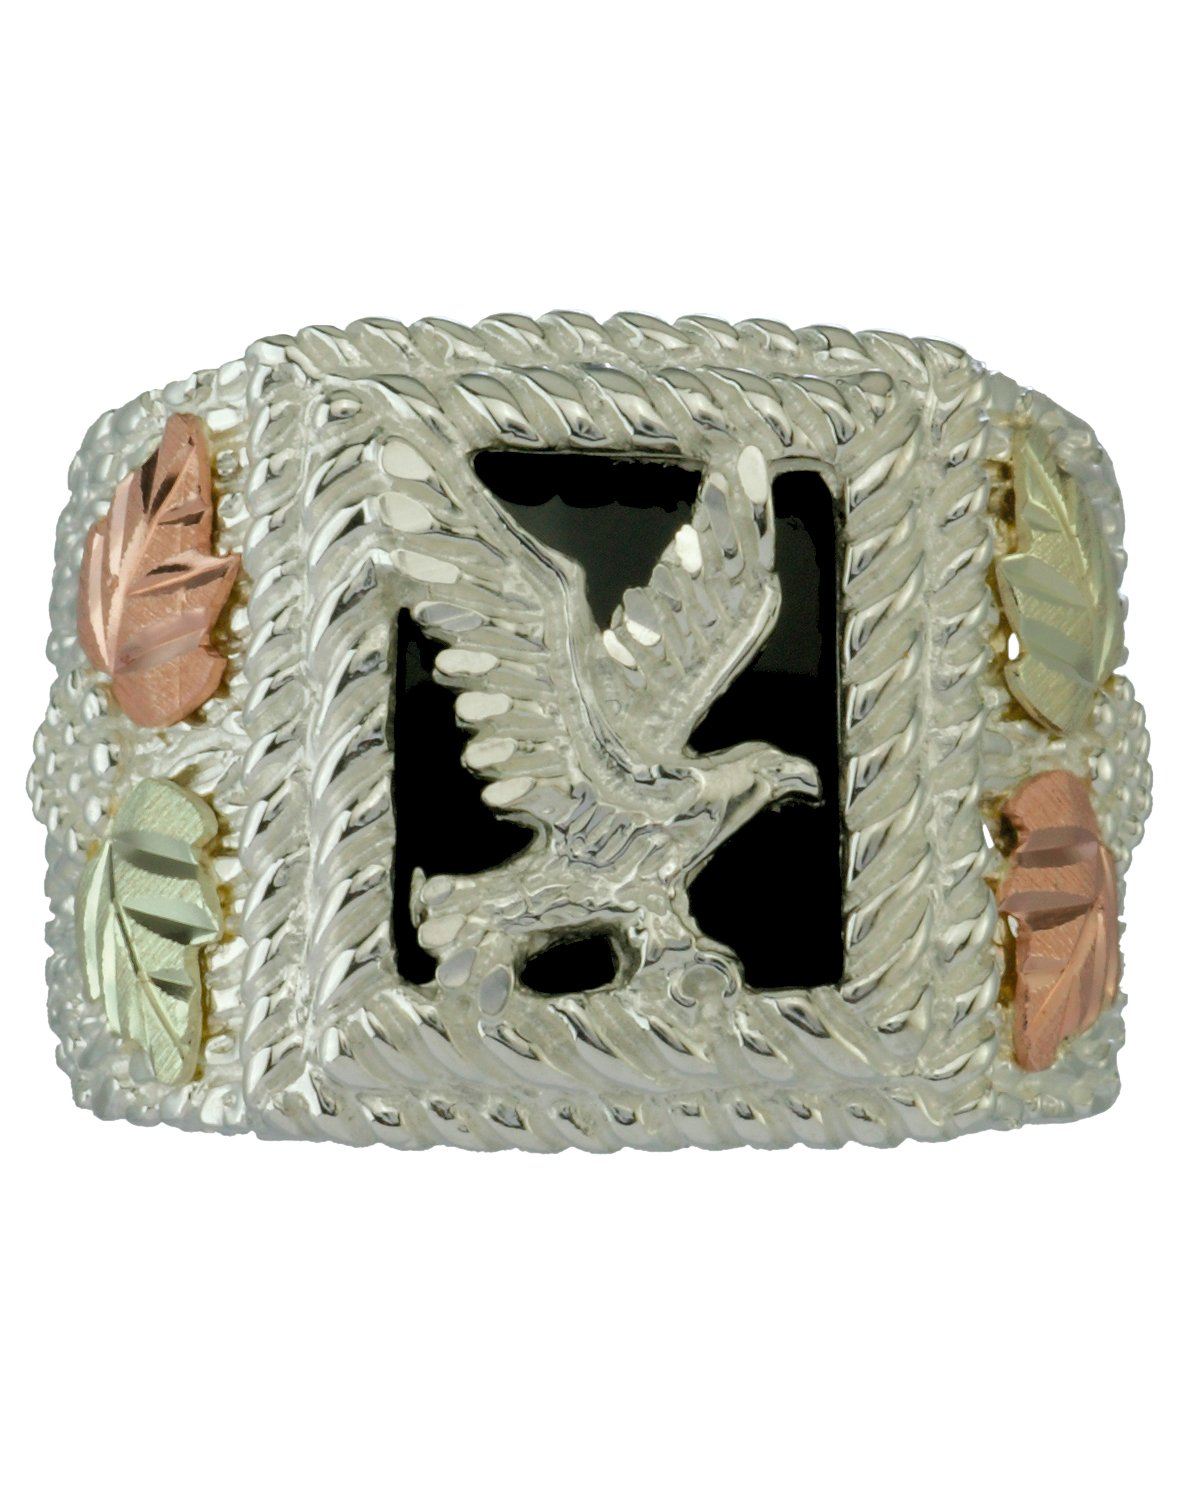 Men's Onyx American Eagle Signet Ring, Sterling Silver, 12k Green and Rose Gold Black Hills Gold Motif, Size 8 by Black Hills Gold Jewelry (Image #1)